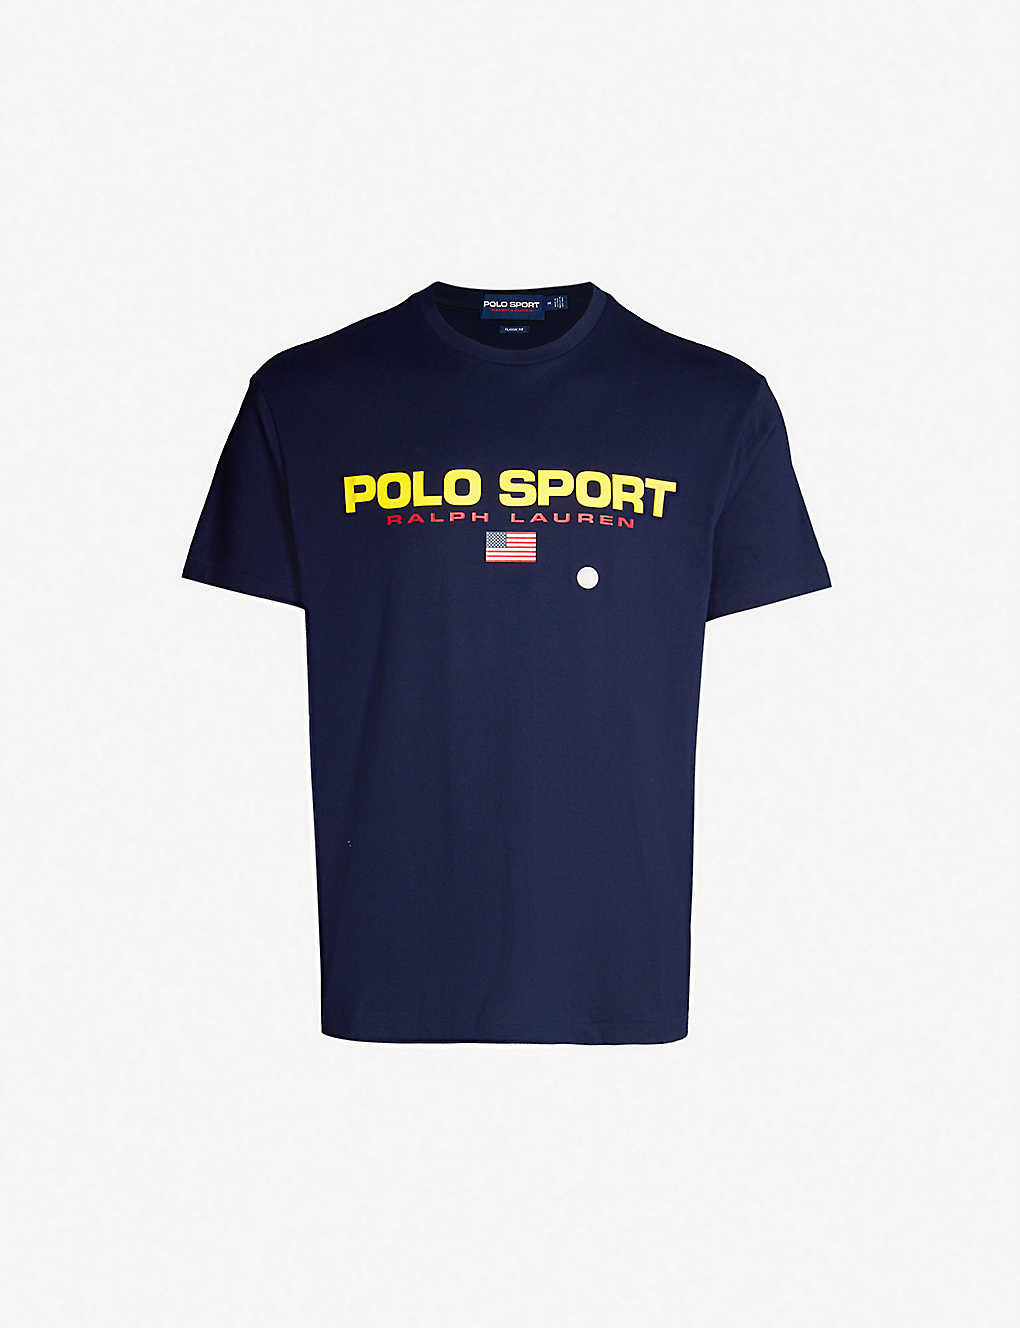 Polo Sport-print cotton-jersey T-shirt by